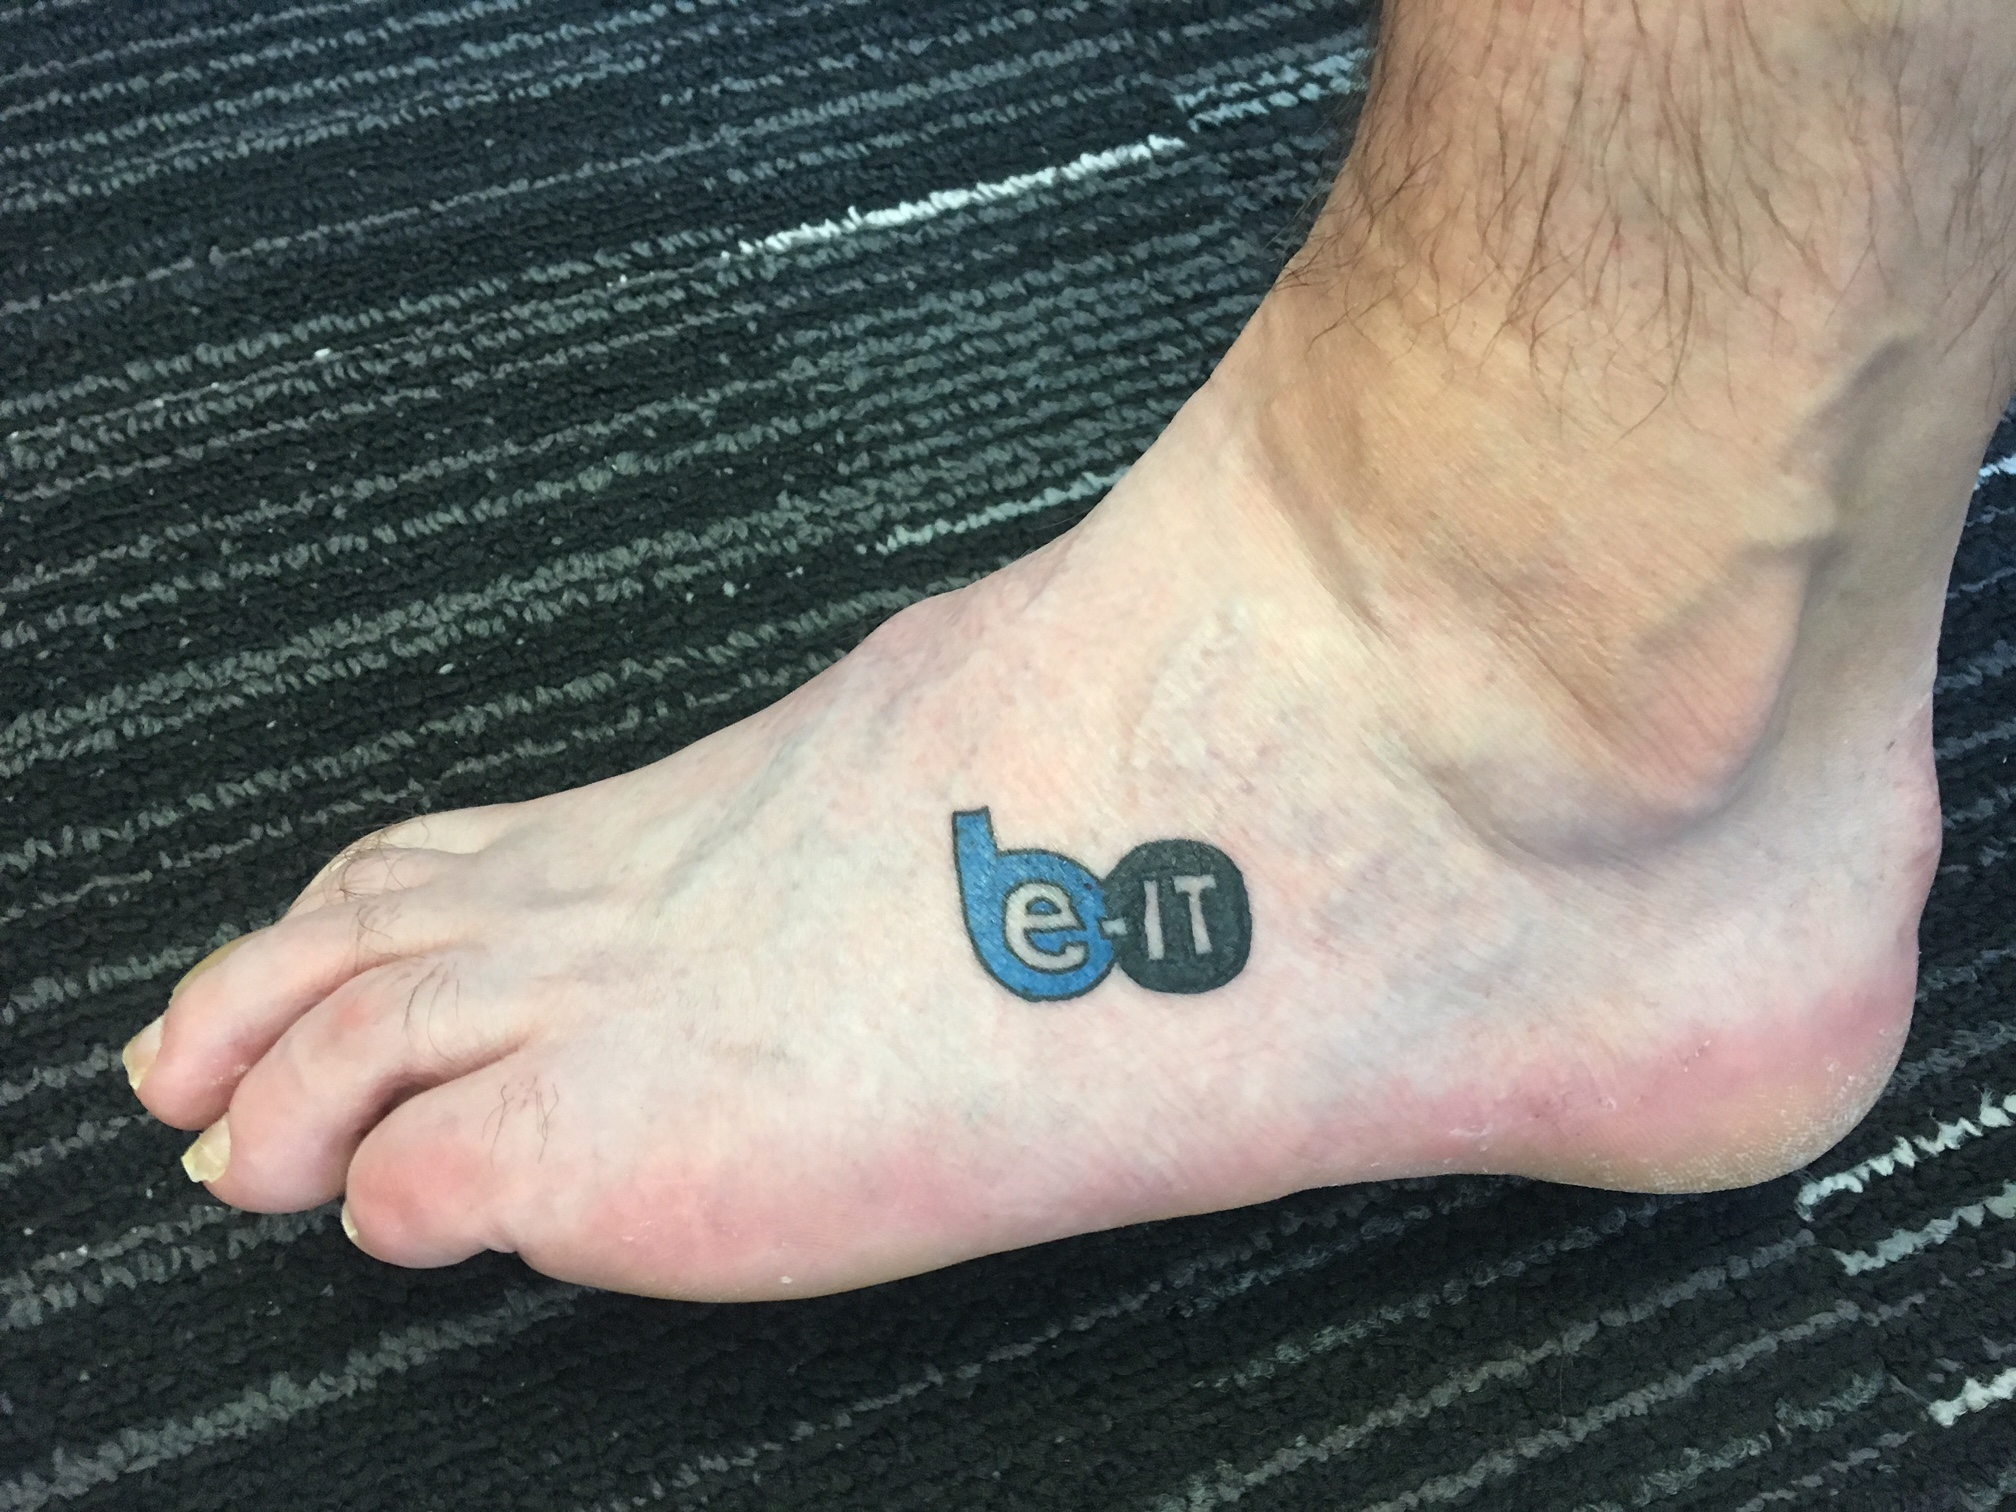 Zander's foot with the Be-IT logo tattoo